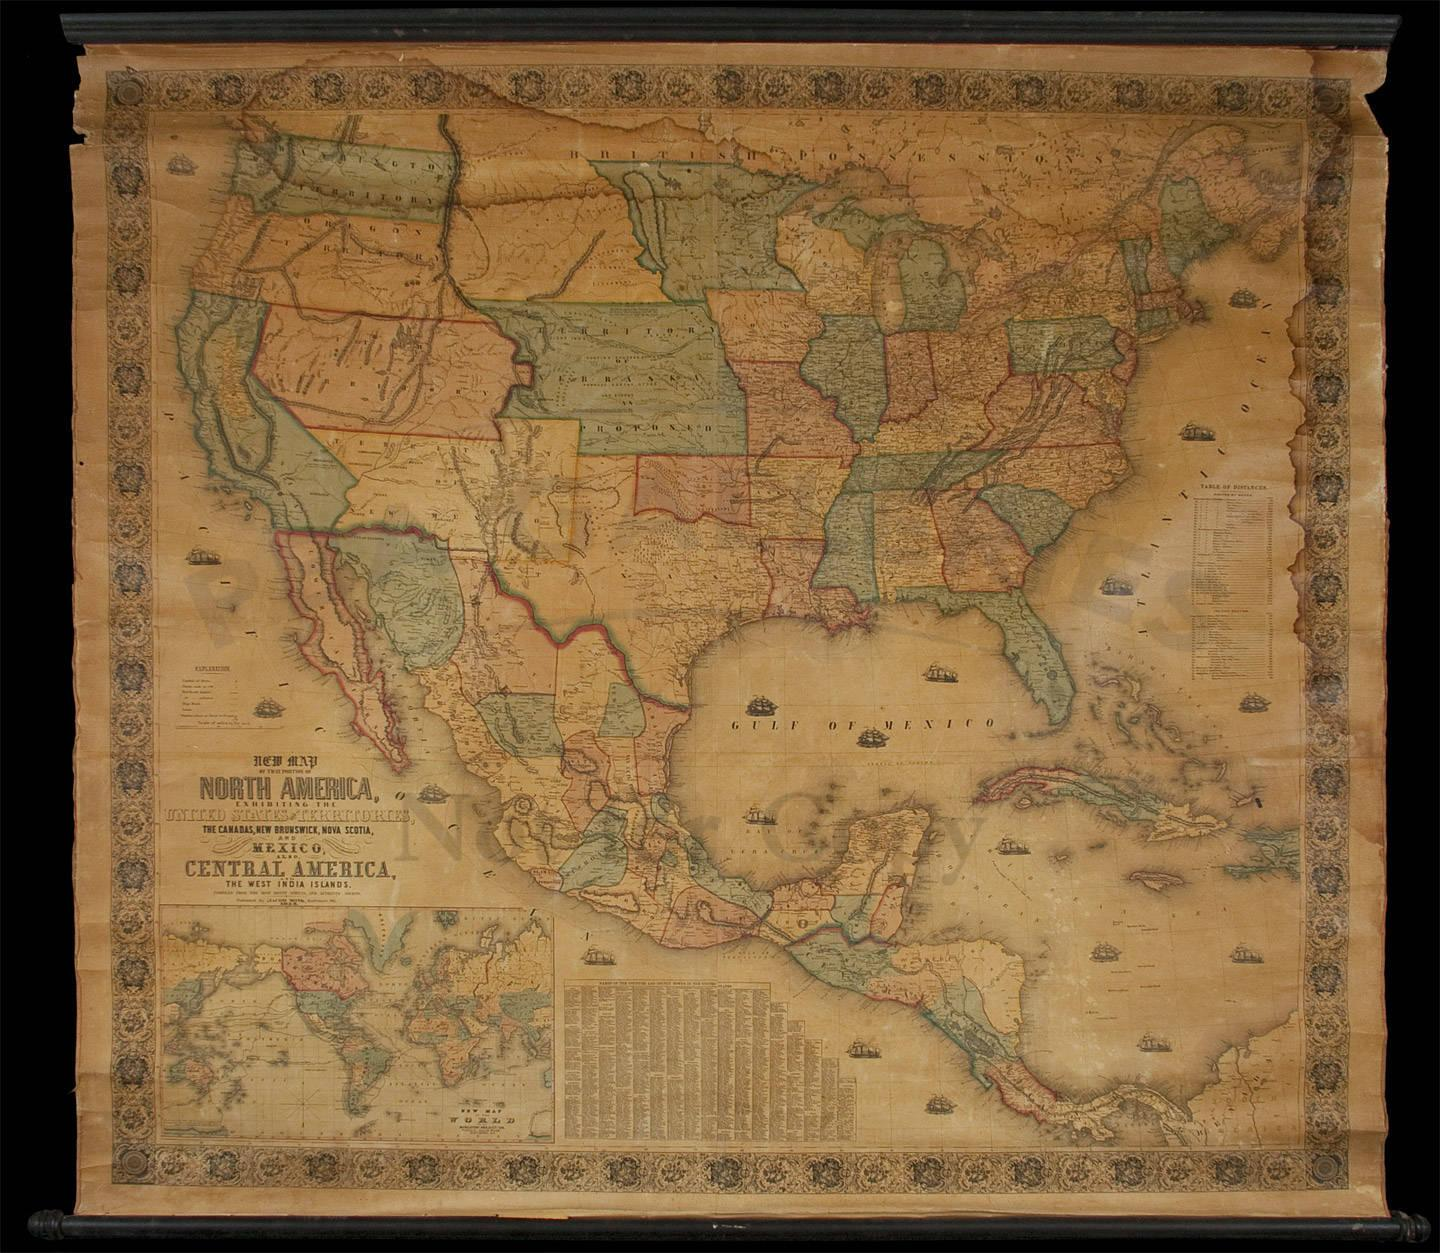 New Map of that Portion of North America, Exhibiting the United ...